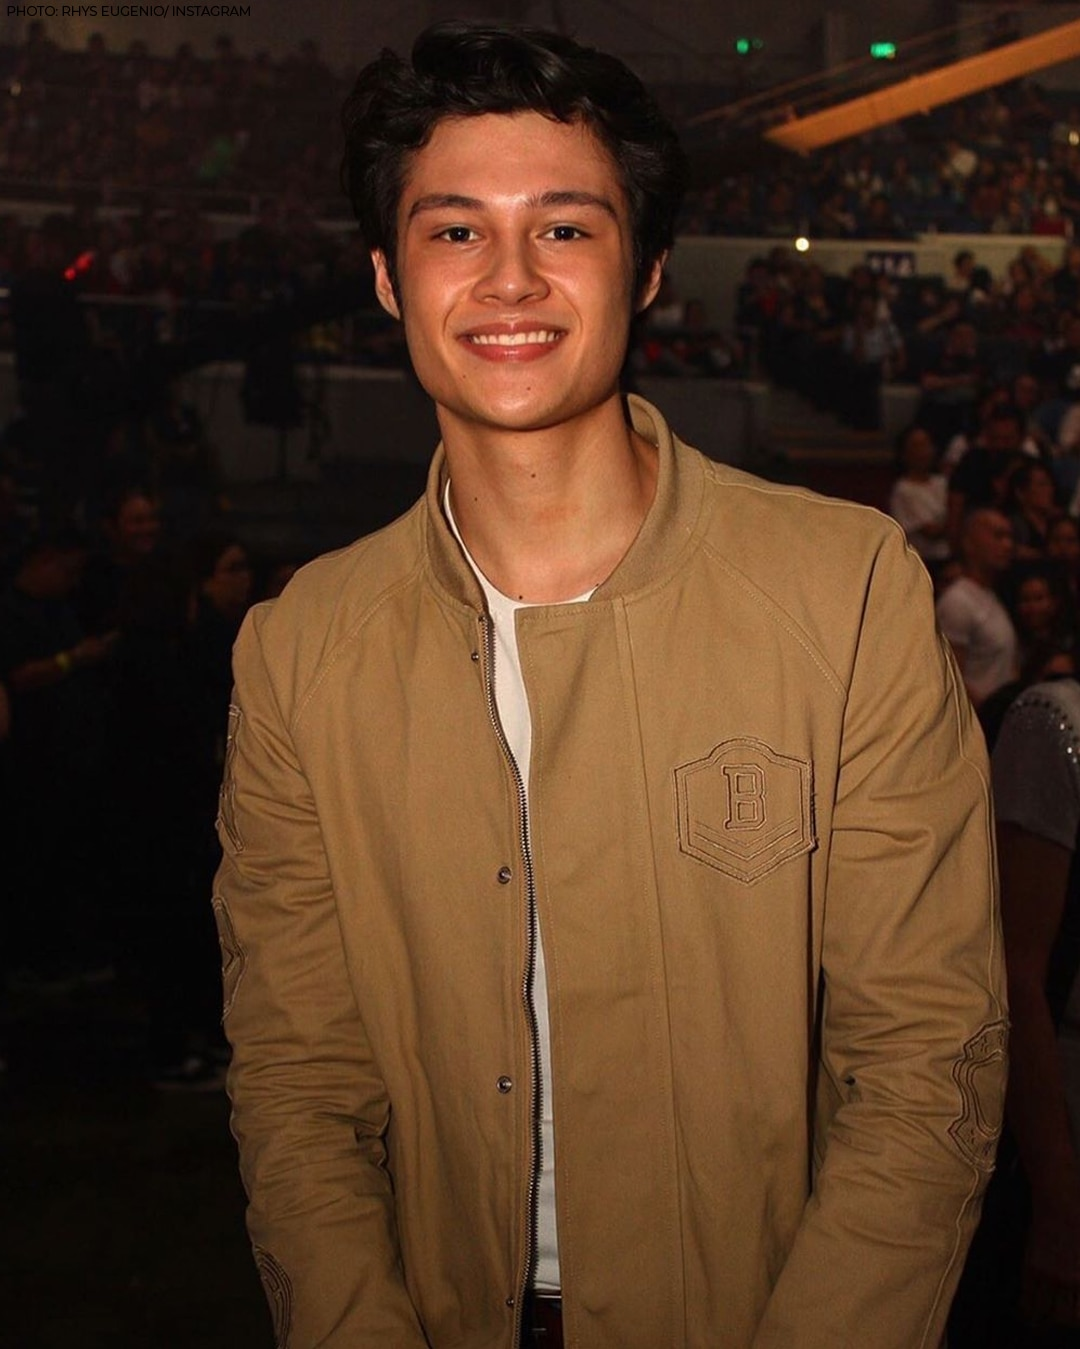 Rhys Eugenio's most handsome moments!